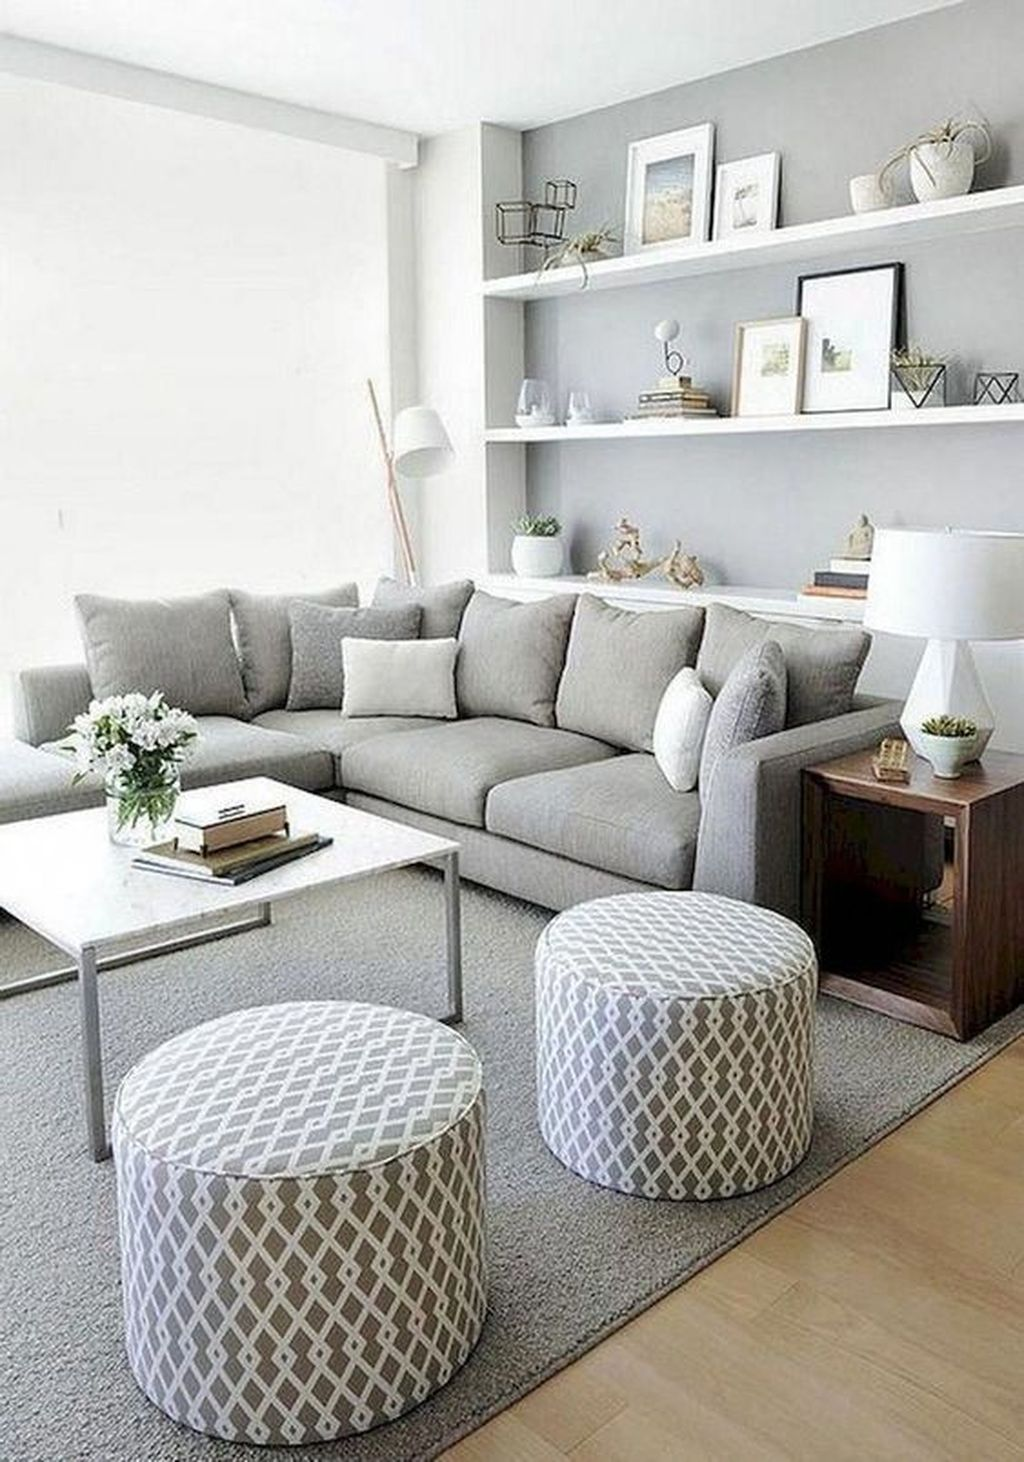 Tips For Choosing a Cool and Comfortable Living Room Sofa